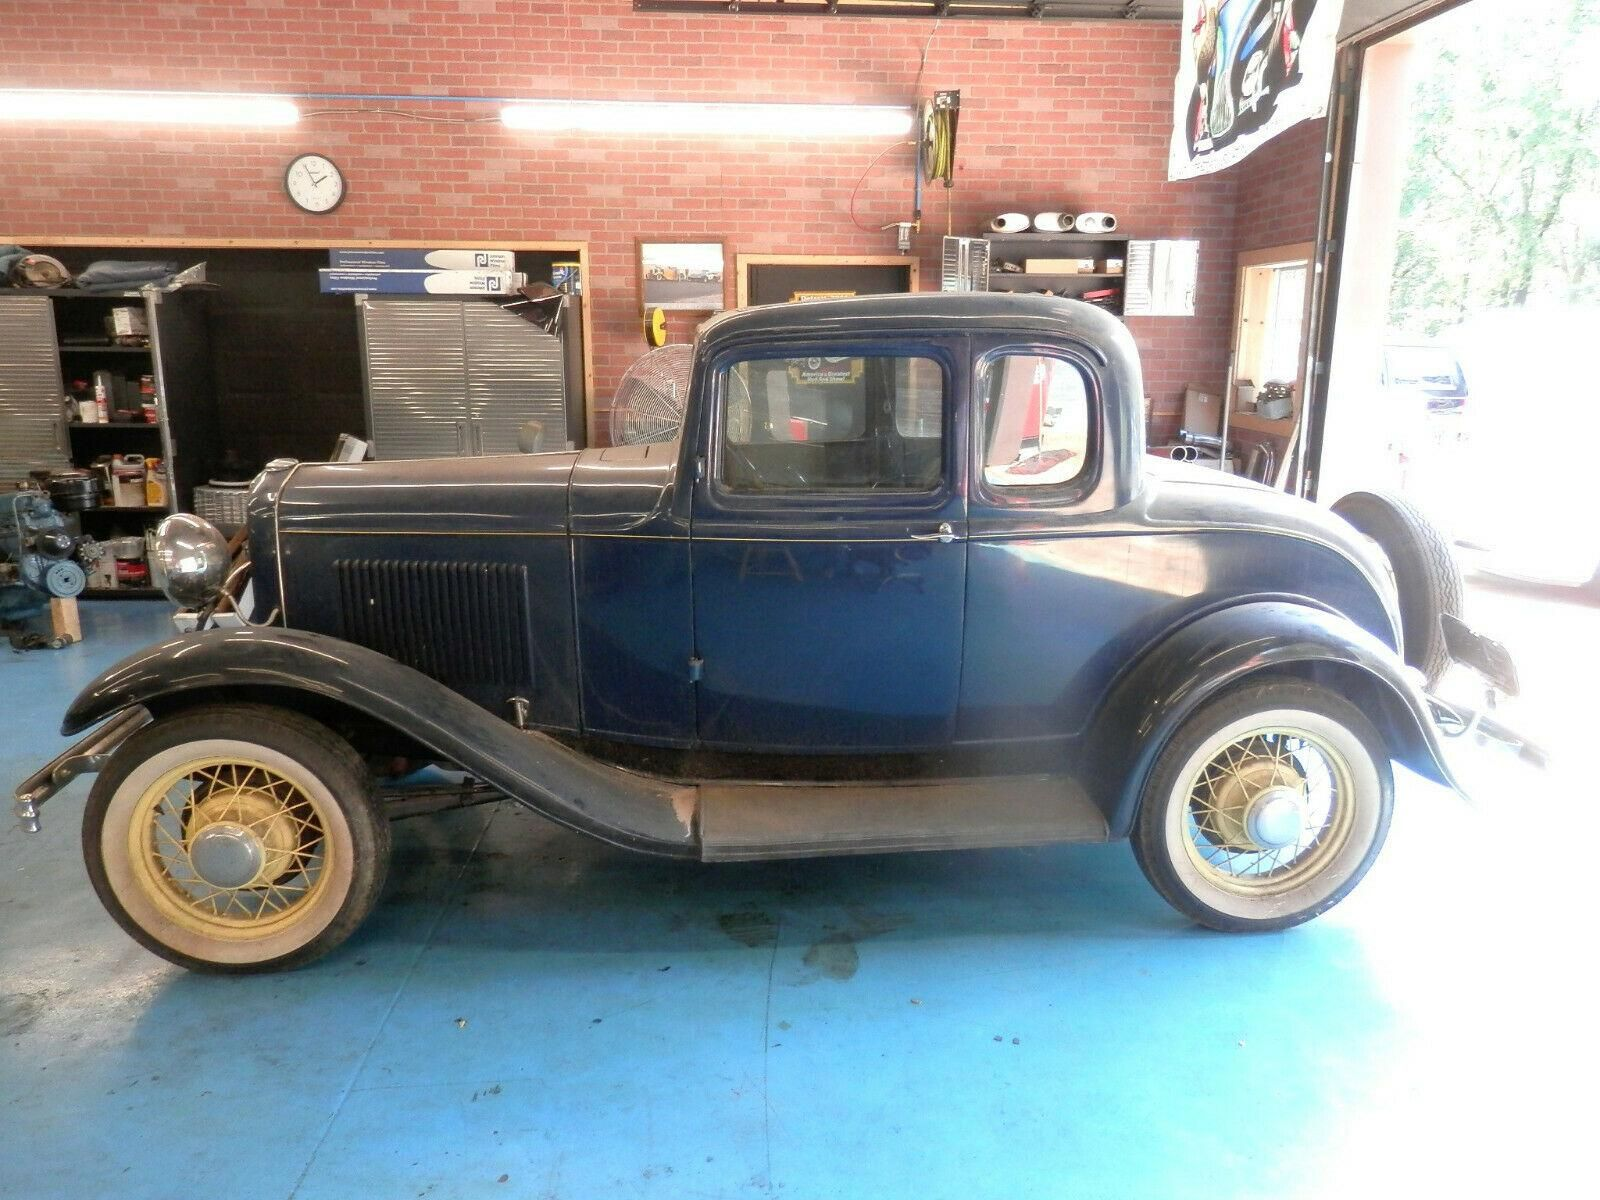 1932 Ford 5 Window 2 Door All Steel Barn Find Coupe Deluxe Five Window Flathead V8 Original Stock For Sale Muscle Cars For Sale 1932 Ford Coupe Cars For Sale